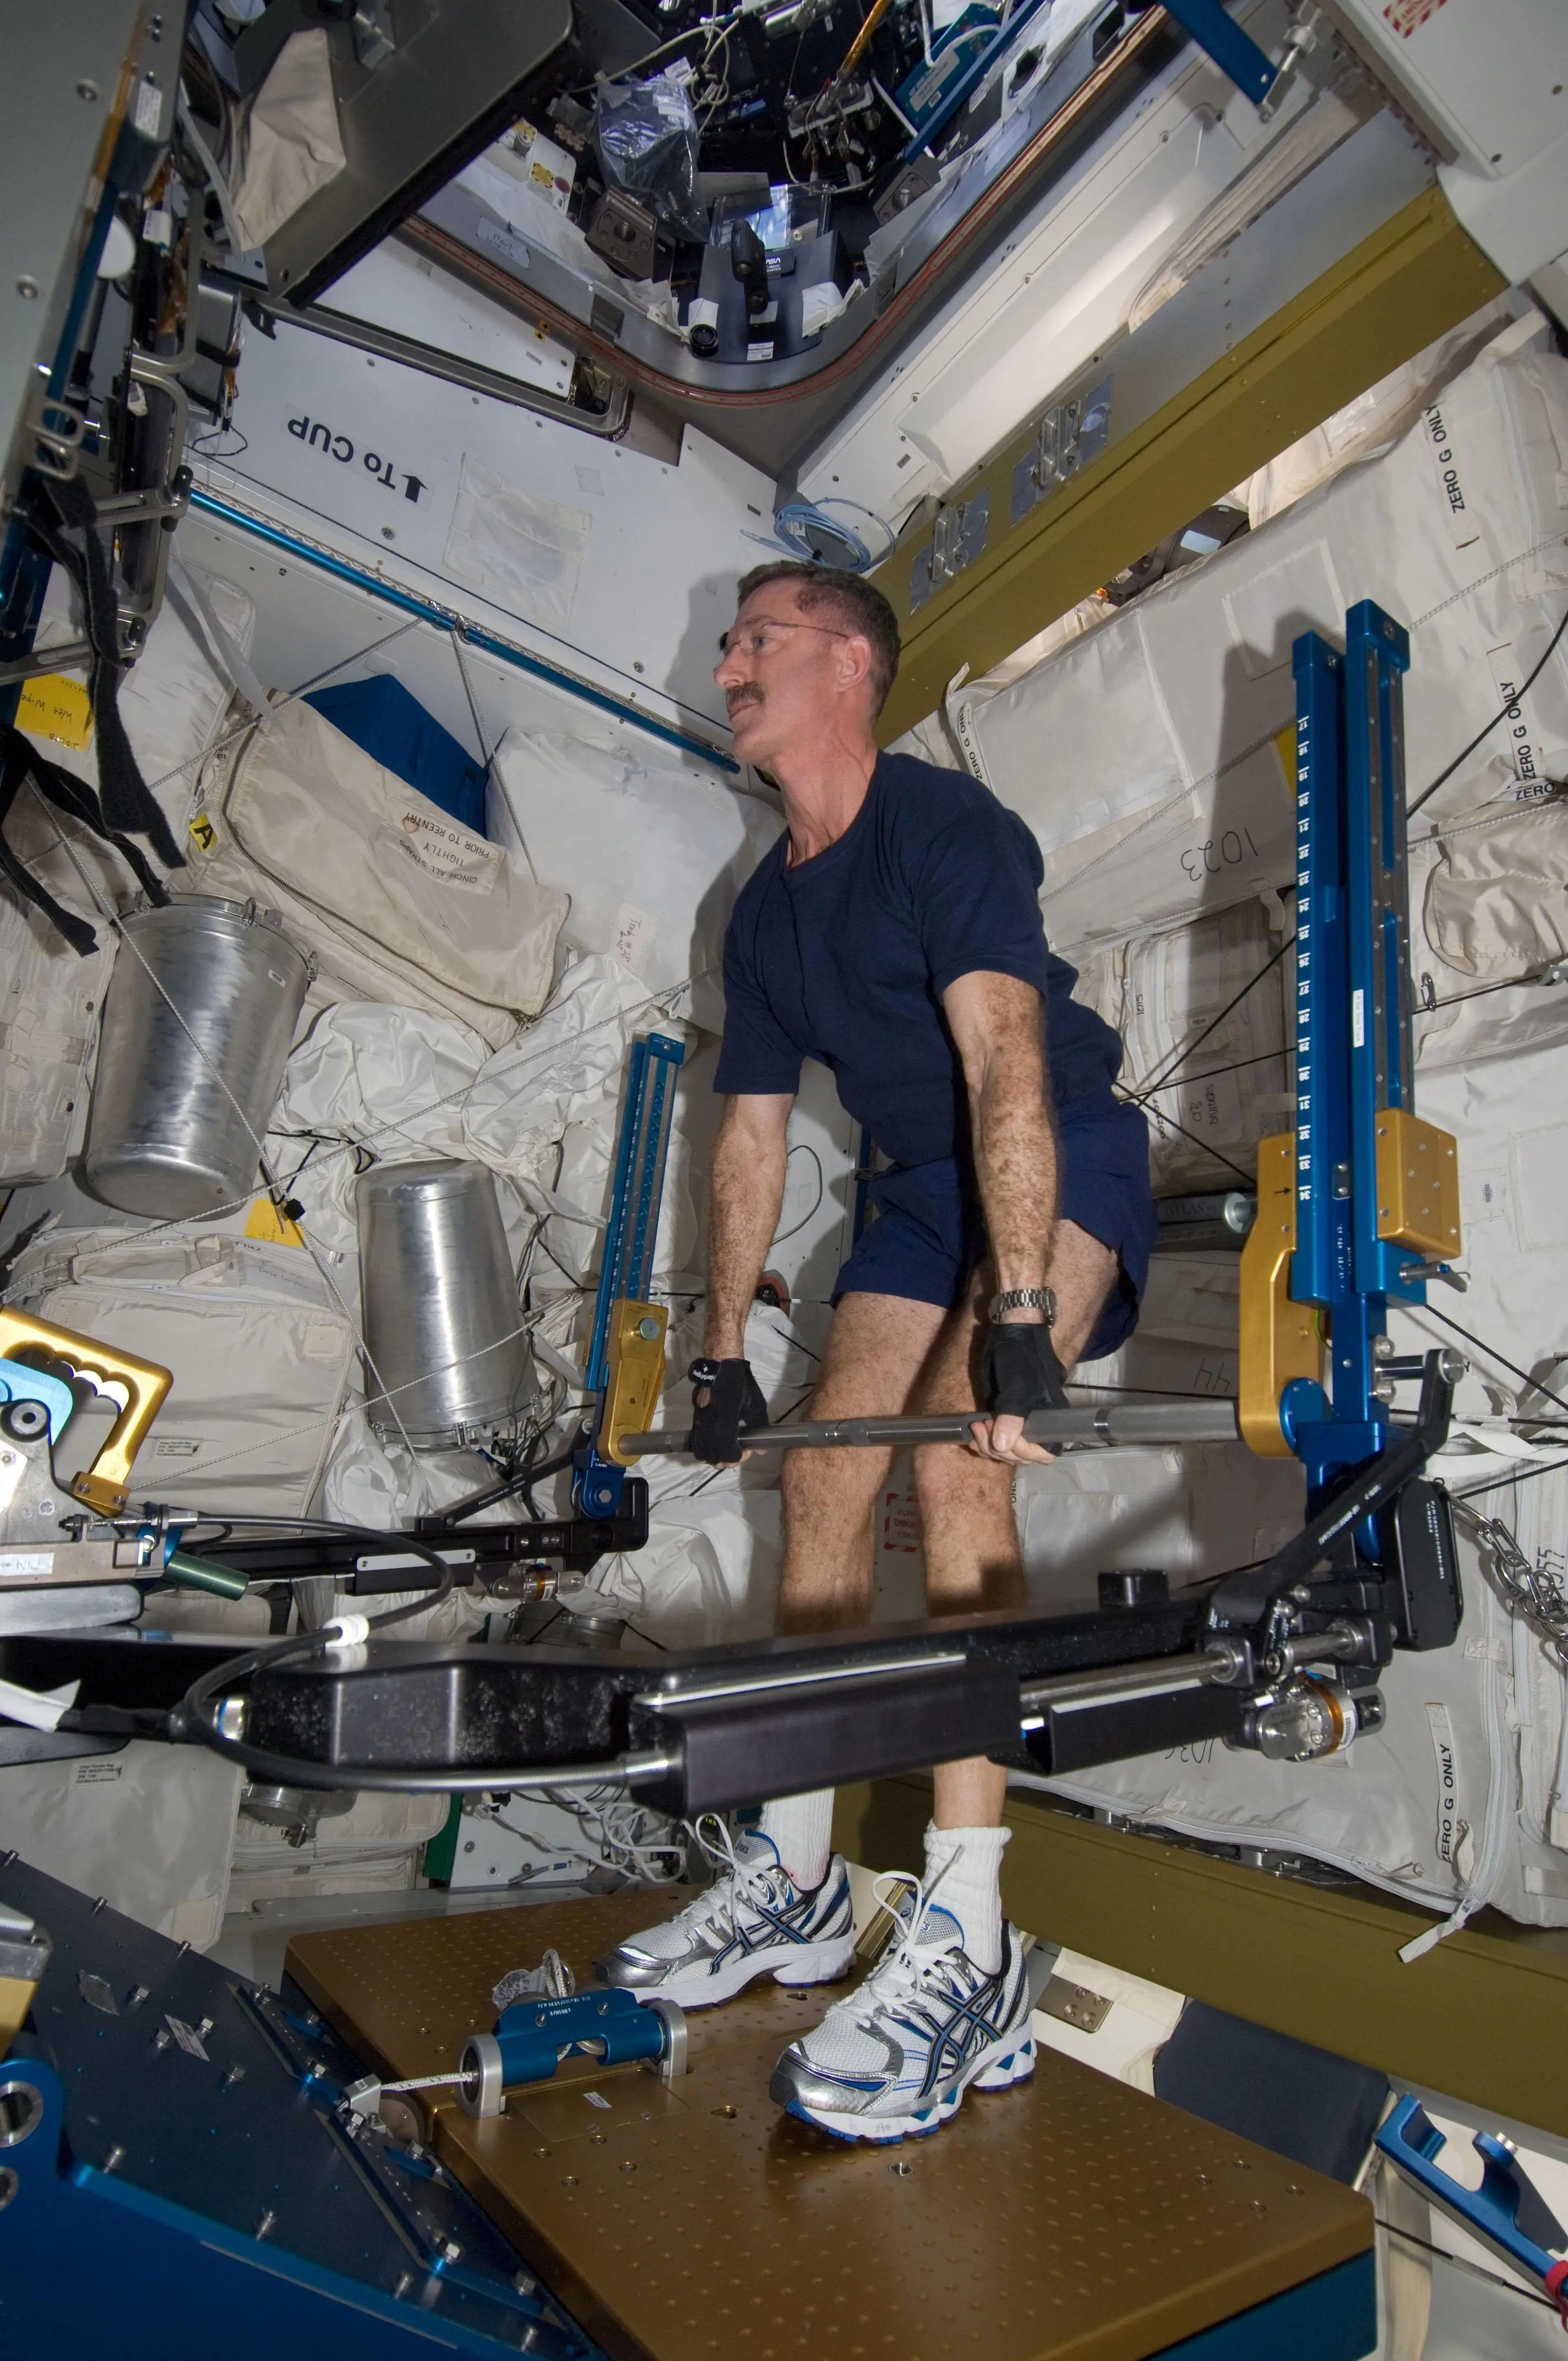 Astronaut Chris Hadfield How To Lift Weights While